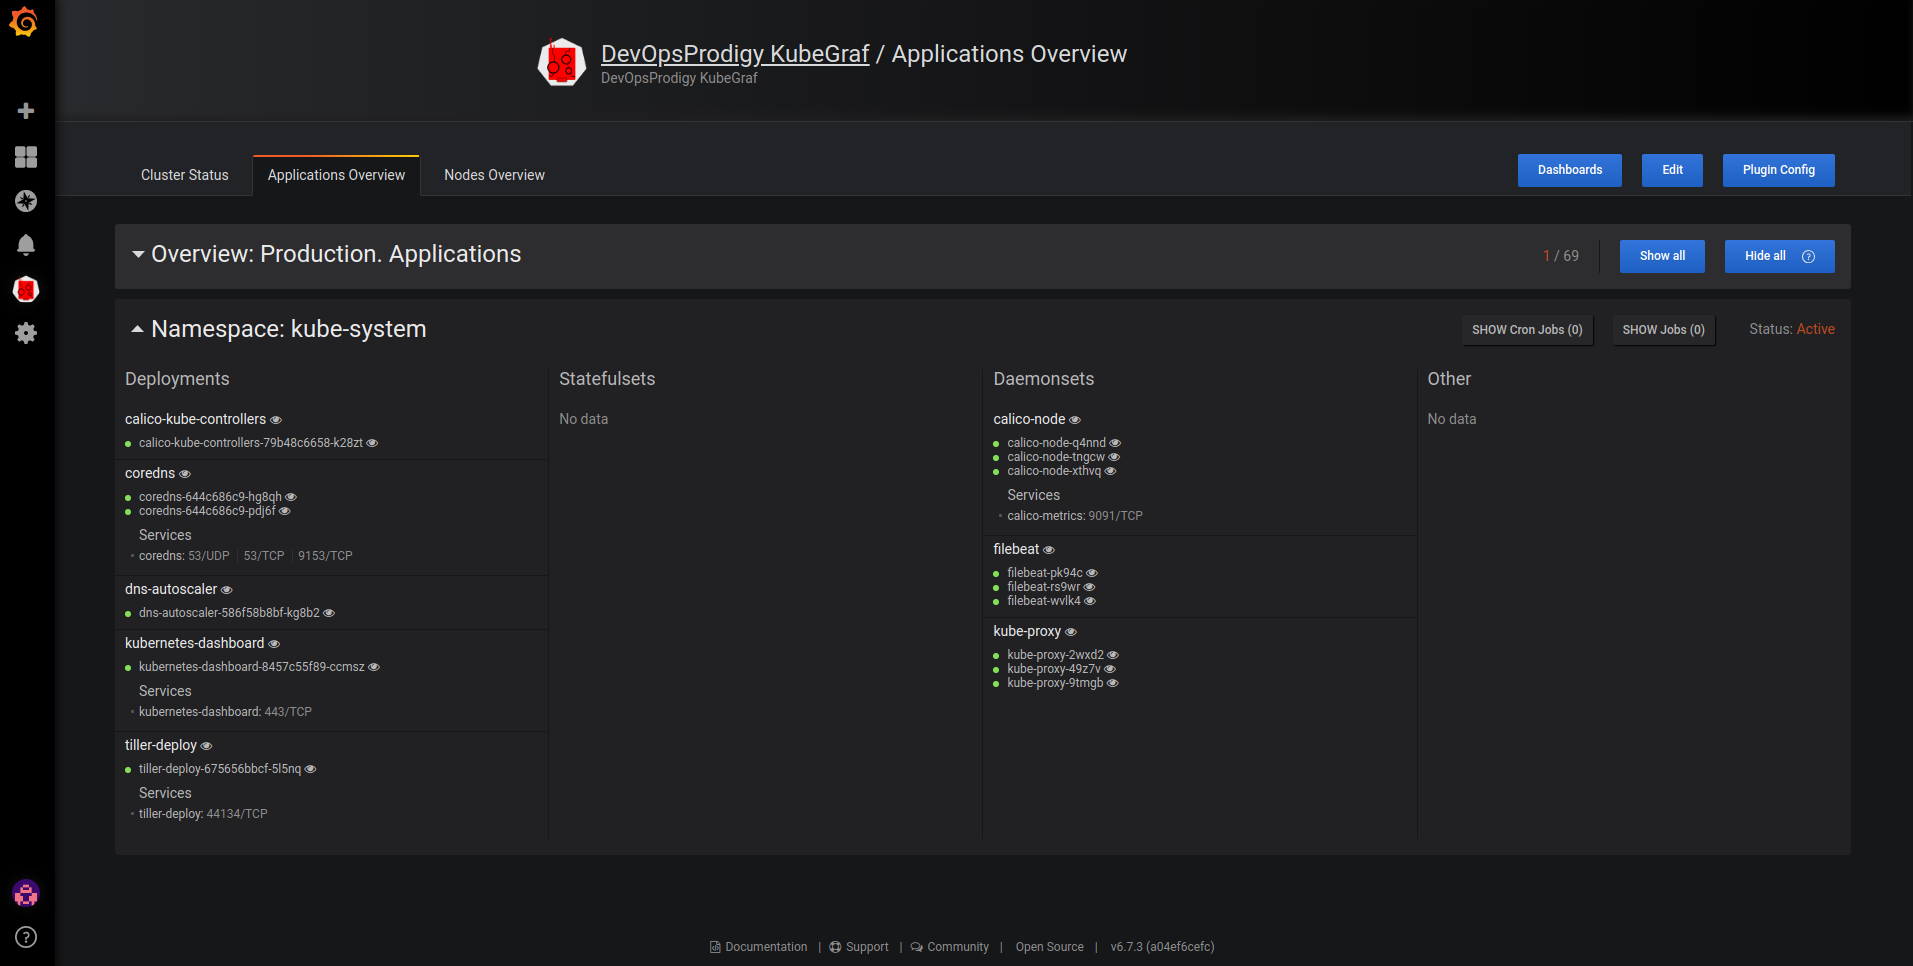 applications_overview